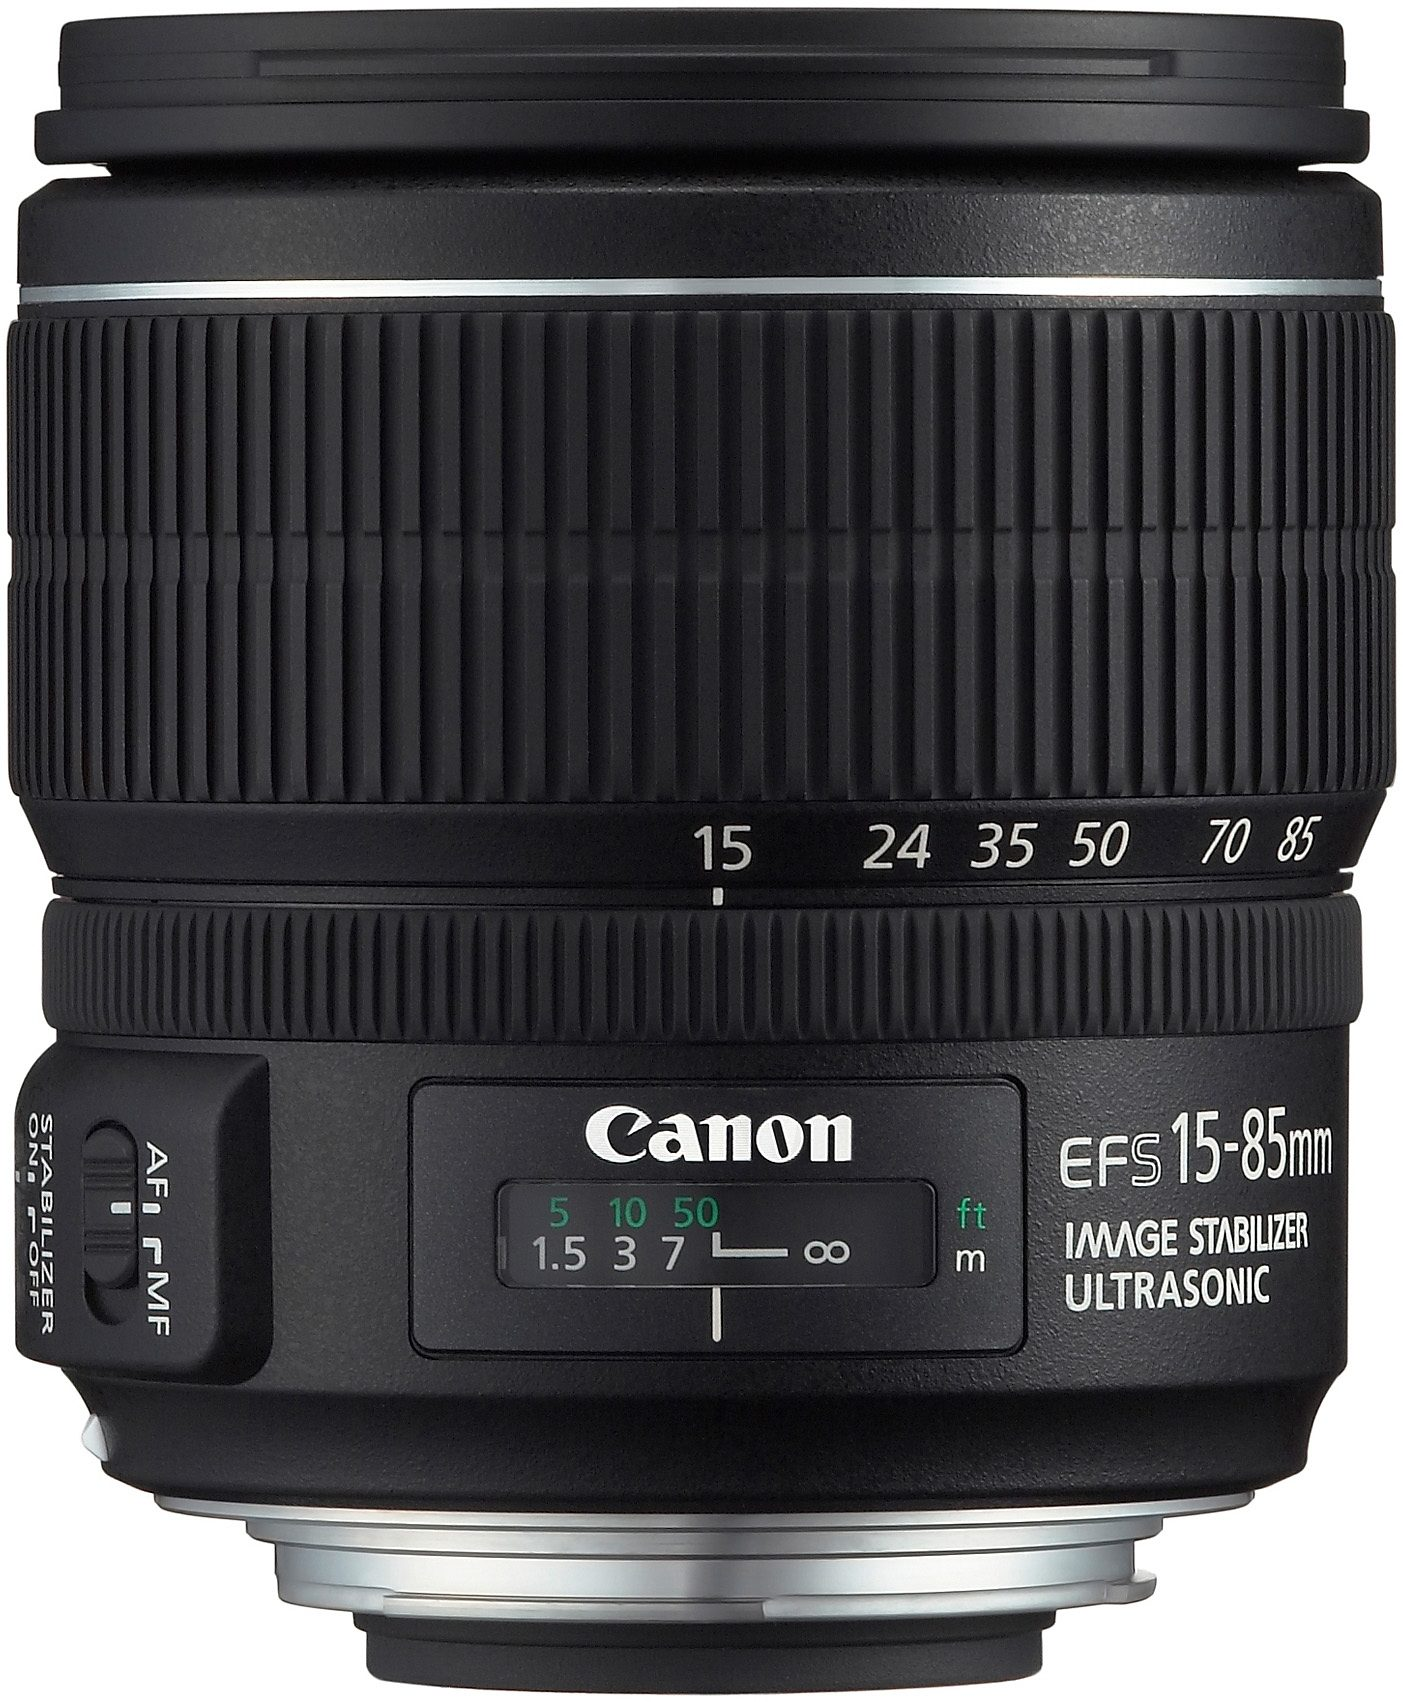 Canon EF-S 15-85mm f/3.5-5.6 IS USM Standardzoom Objektiv